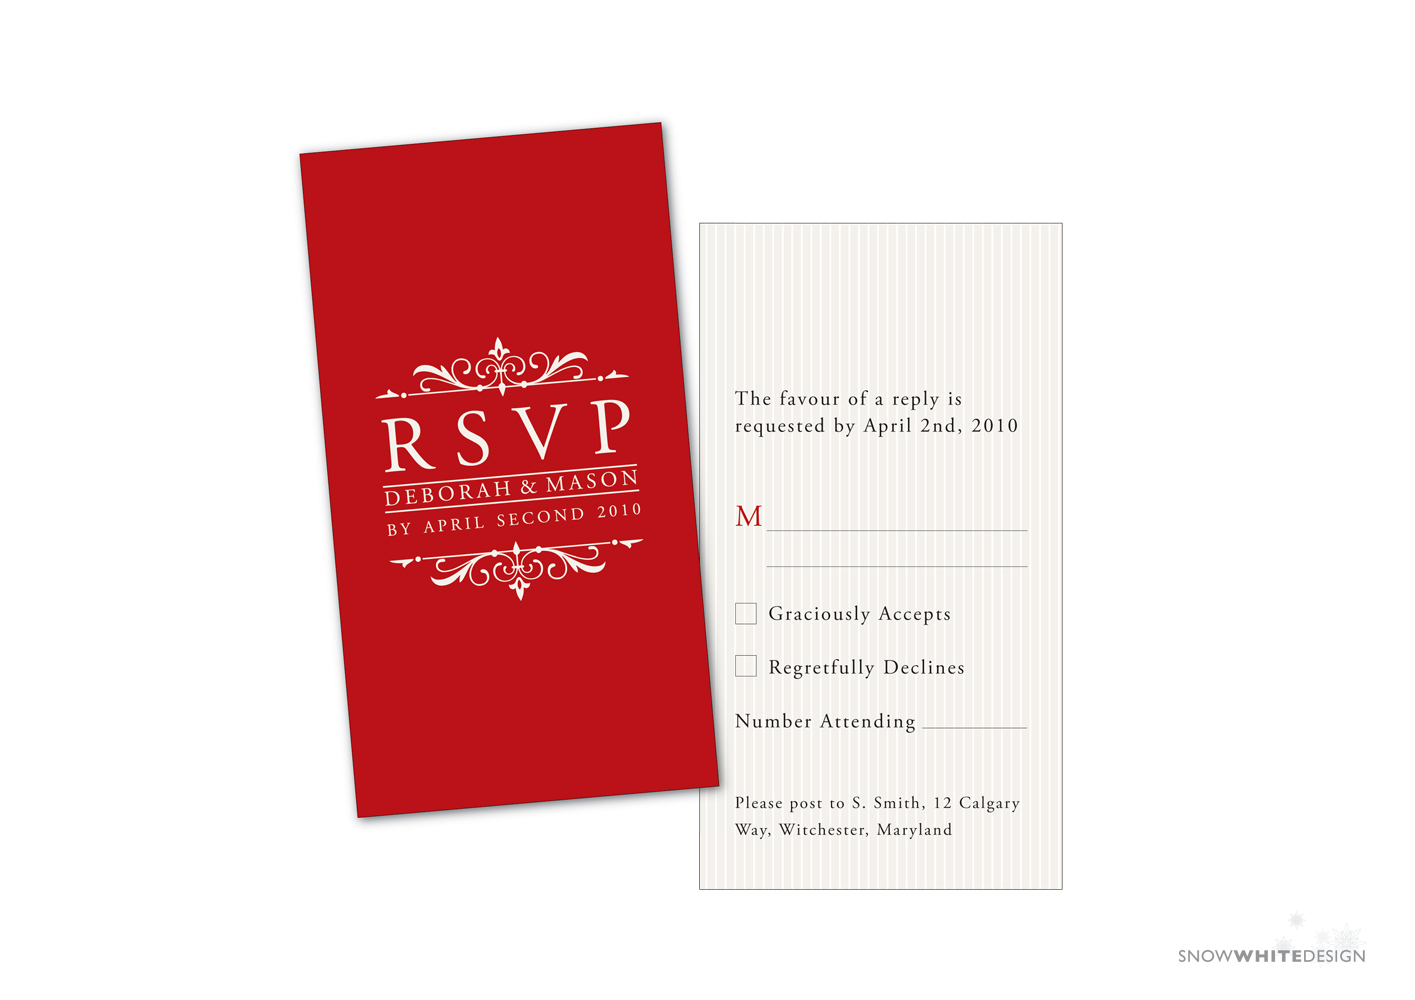 DIY, white, red, Rsvp, Design, Card, Stripes, Snow, Response, Snow white design